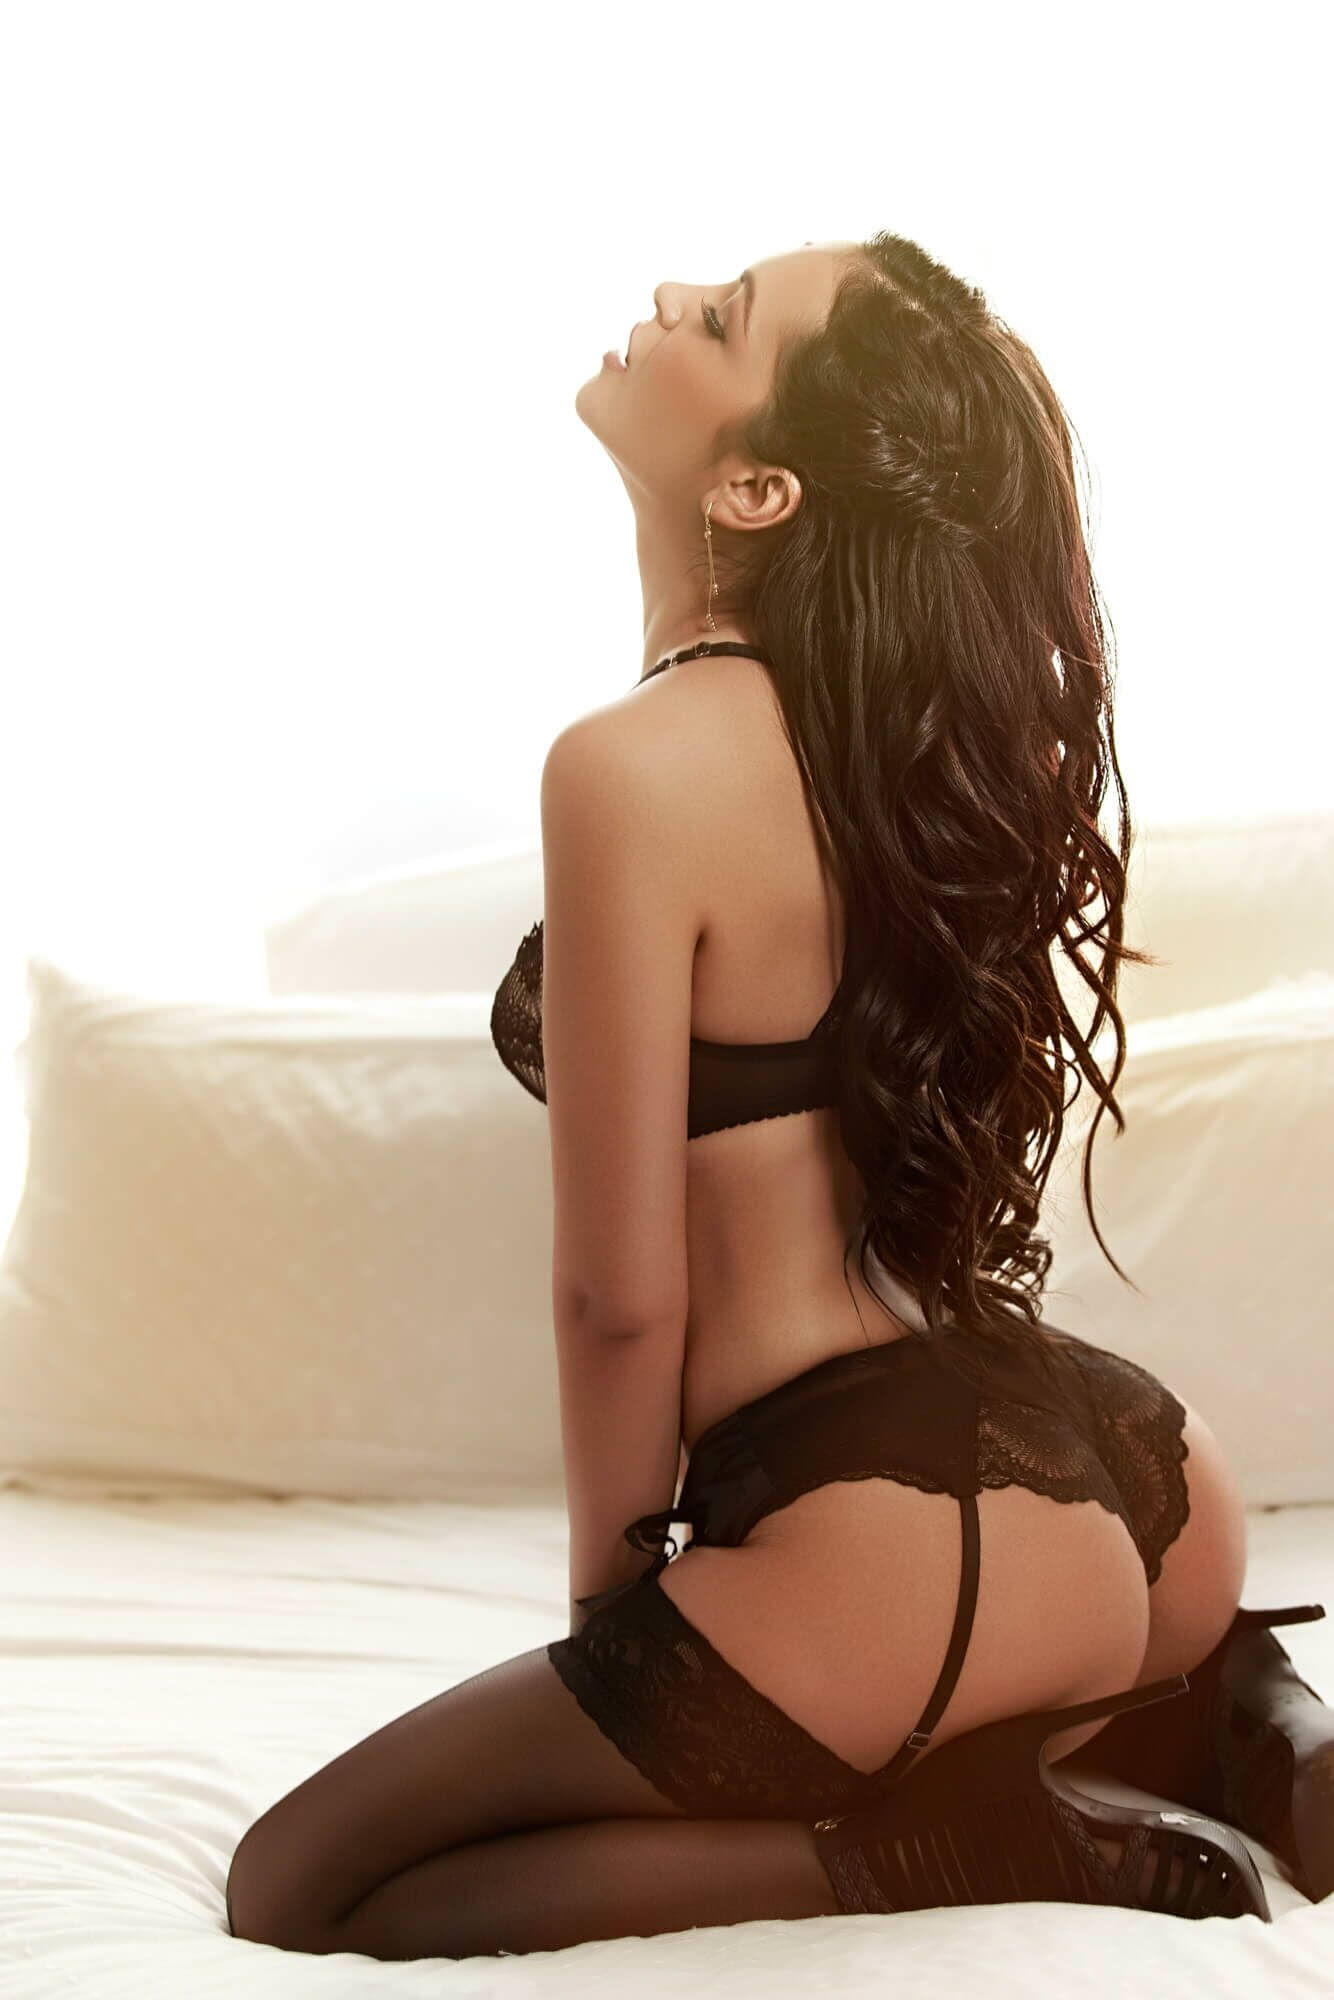 Search for Los Angeles Escort Reviews,Los Angeles.